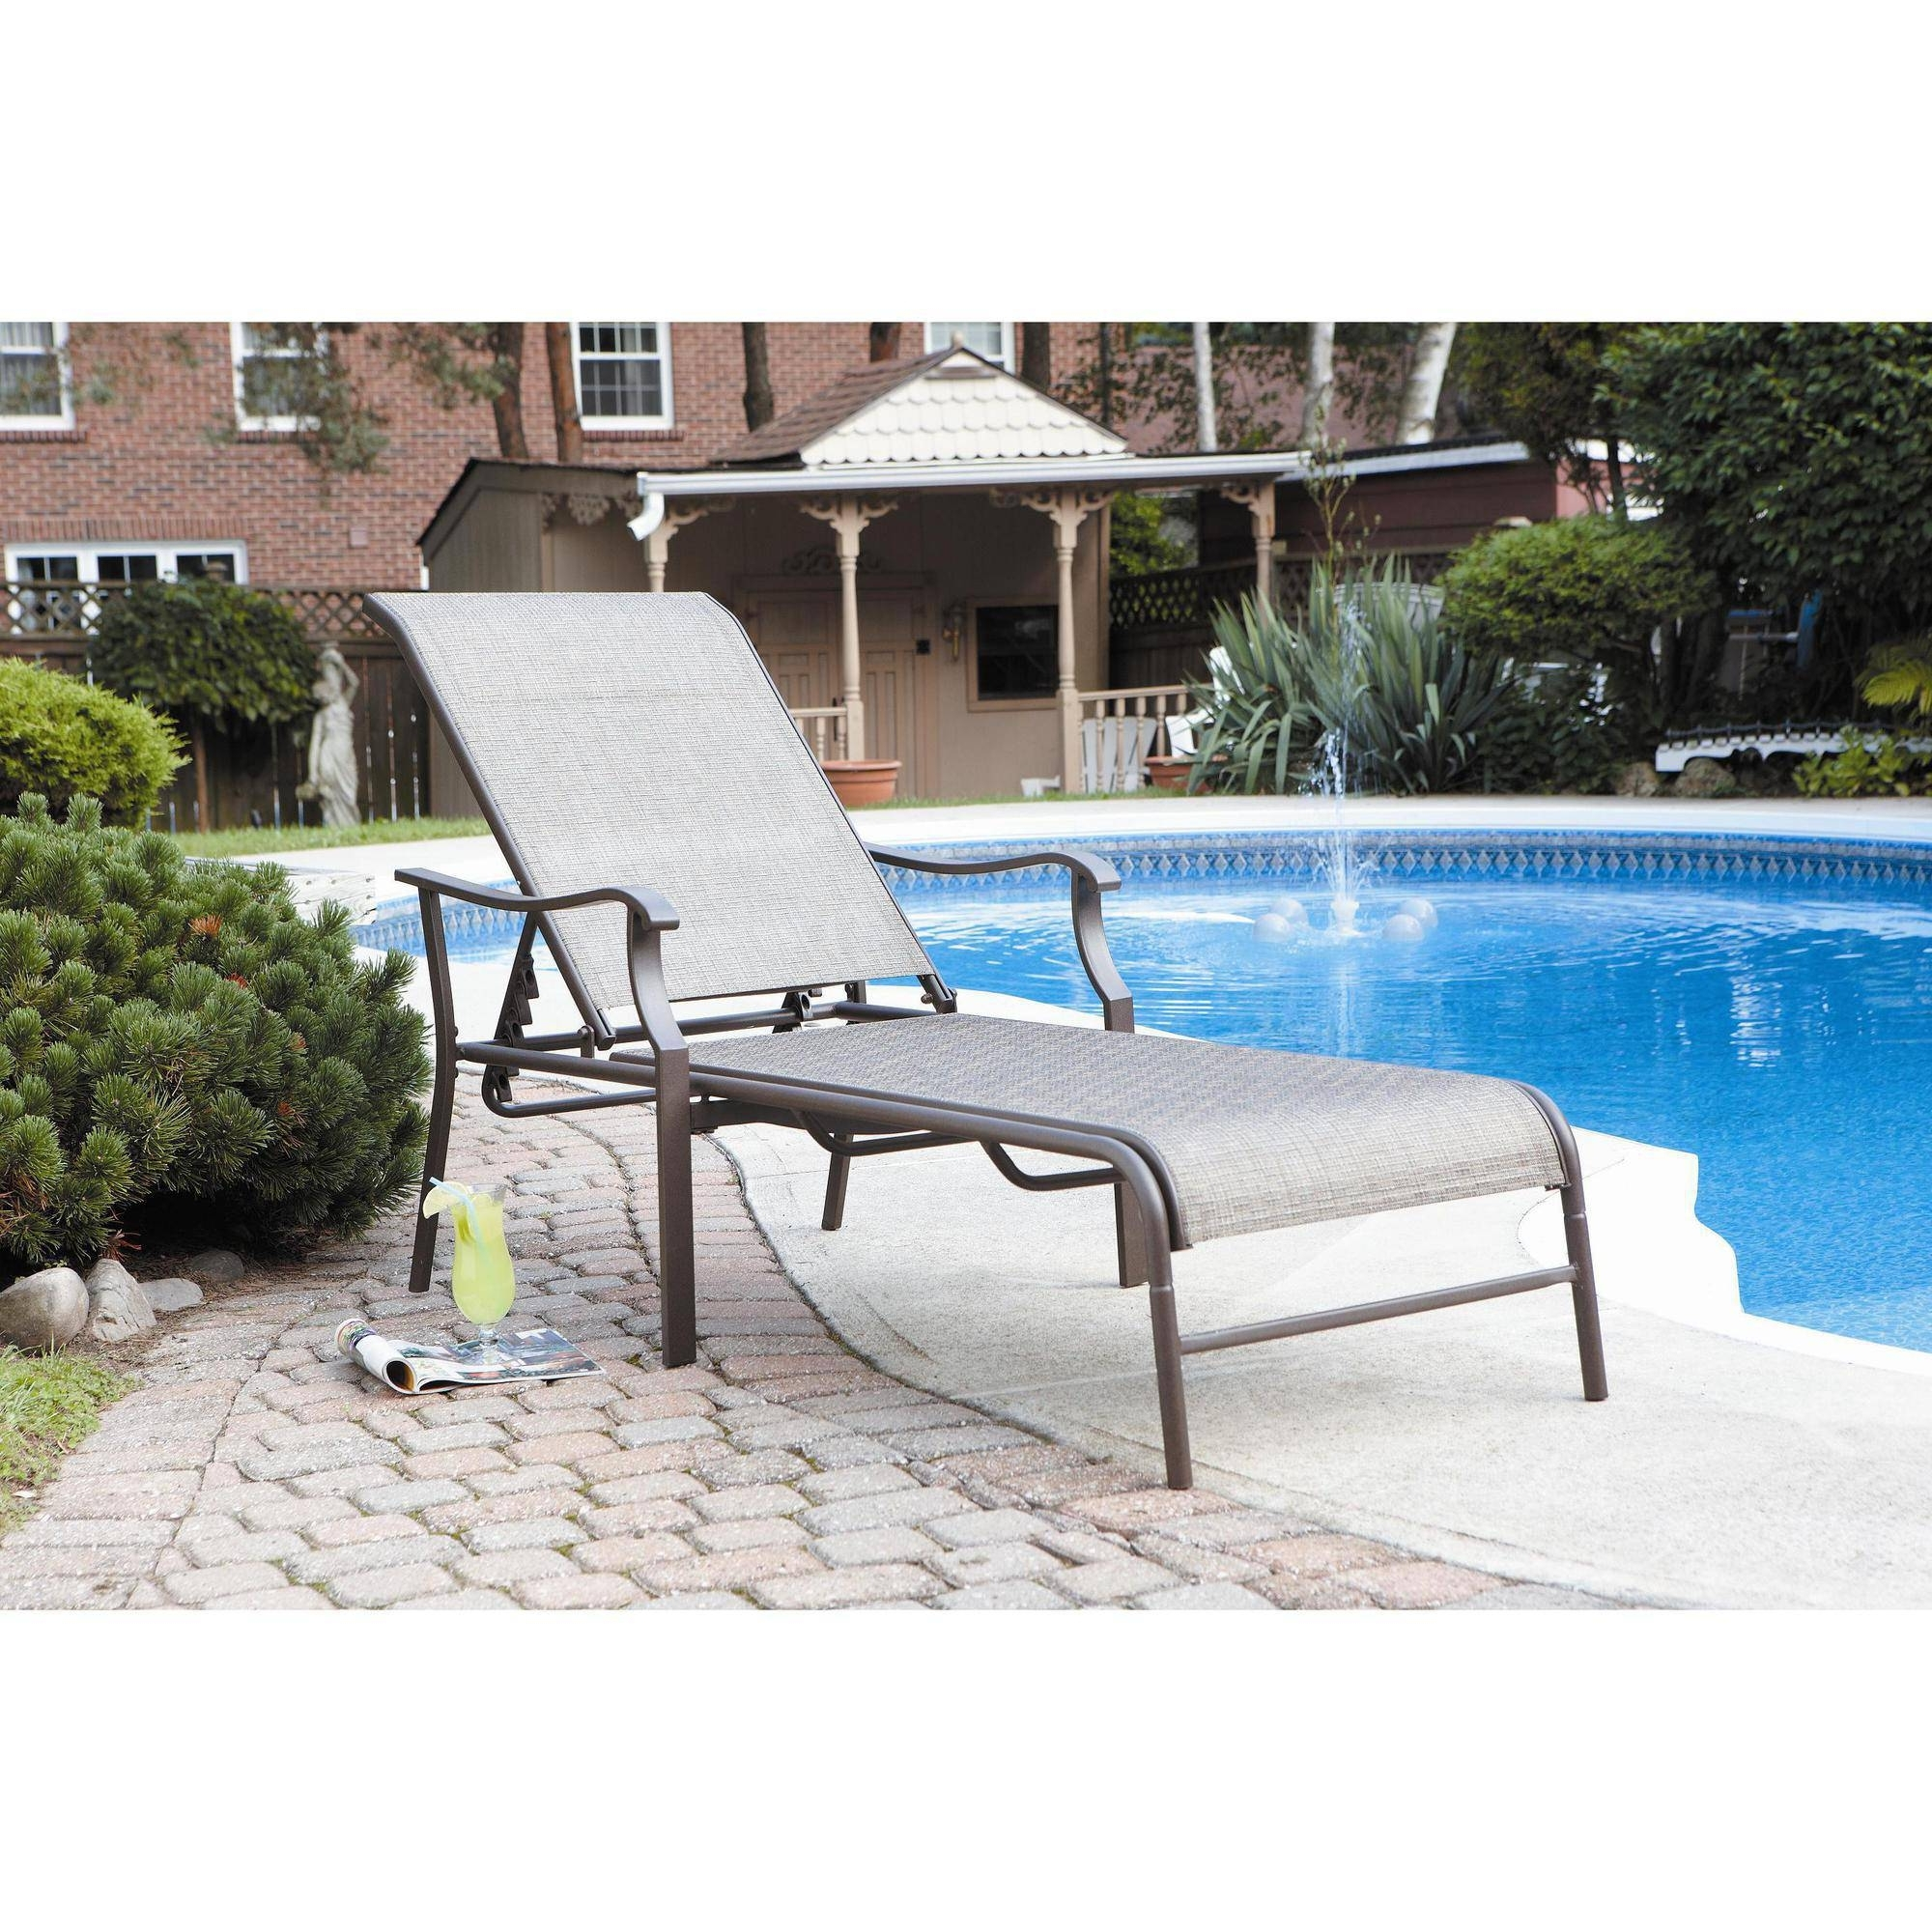 Latest Outdoor : White Outdoor Chaise Lounge Lounge Couch Sun Lounger Pertaining To Outdoor Chaise Lounge Chairs With Canopy (View 10 of 15)